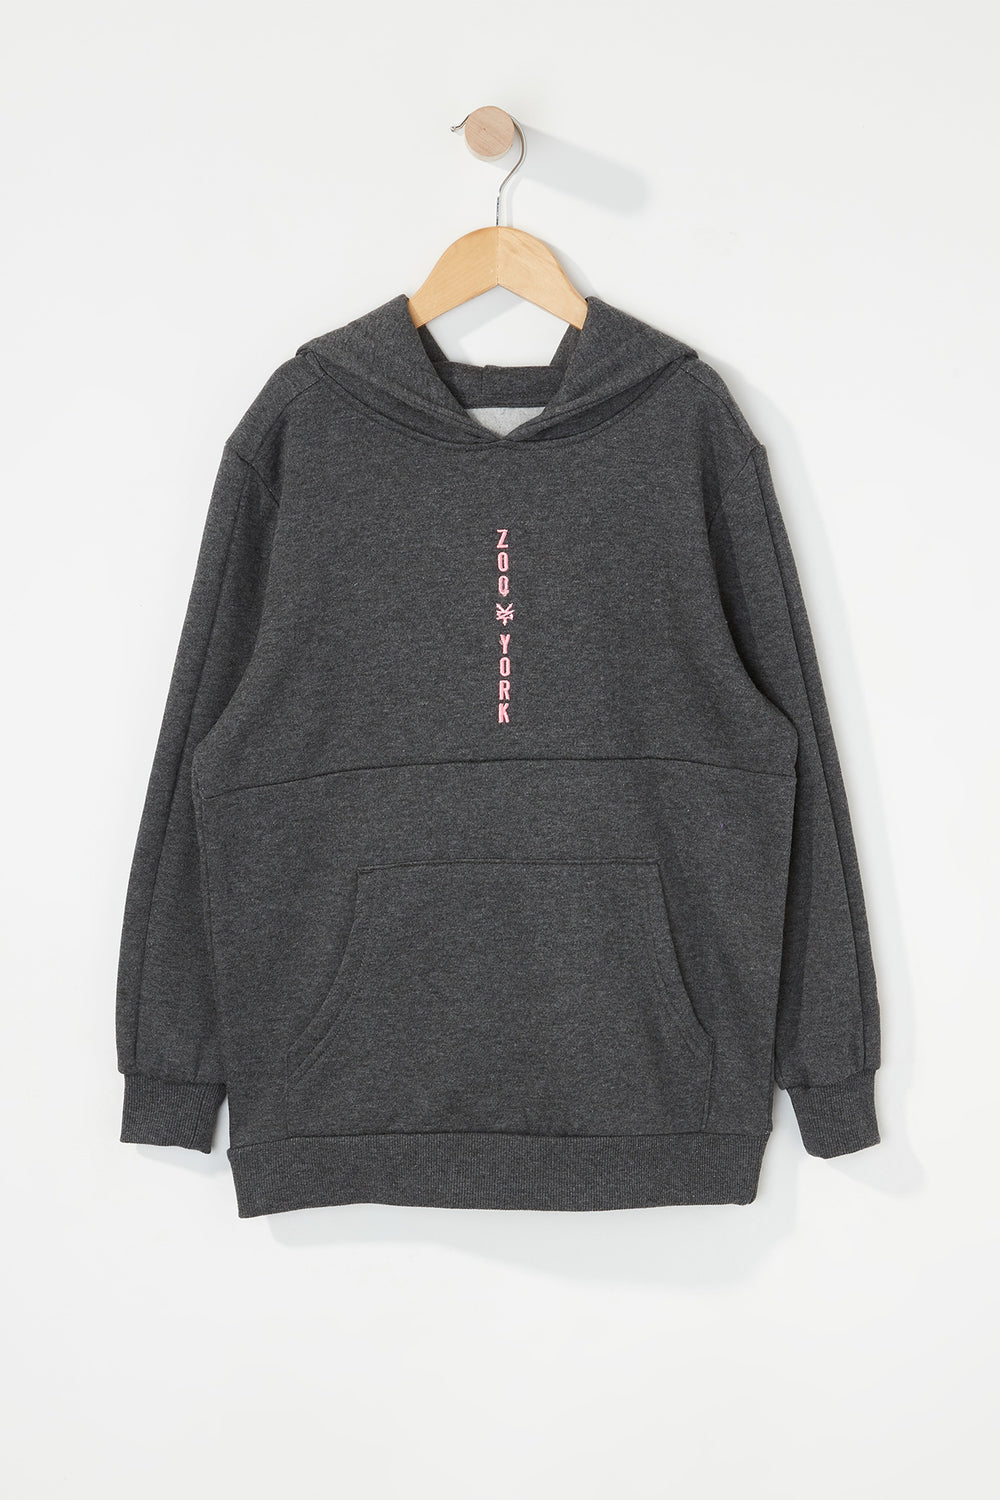 Zoo York Boys Embroidered Logo Hoodie Charcoal